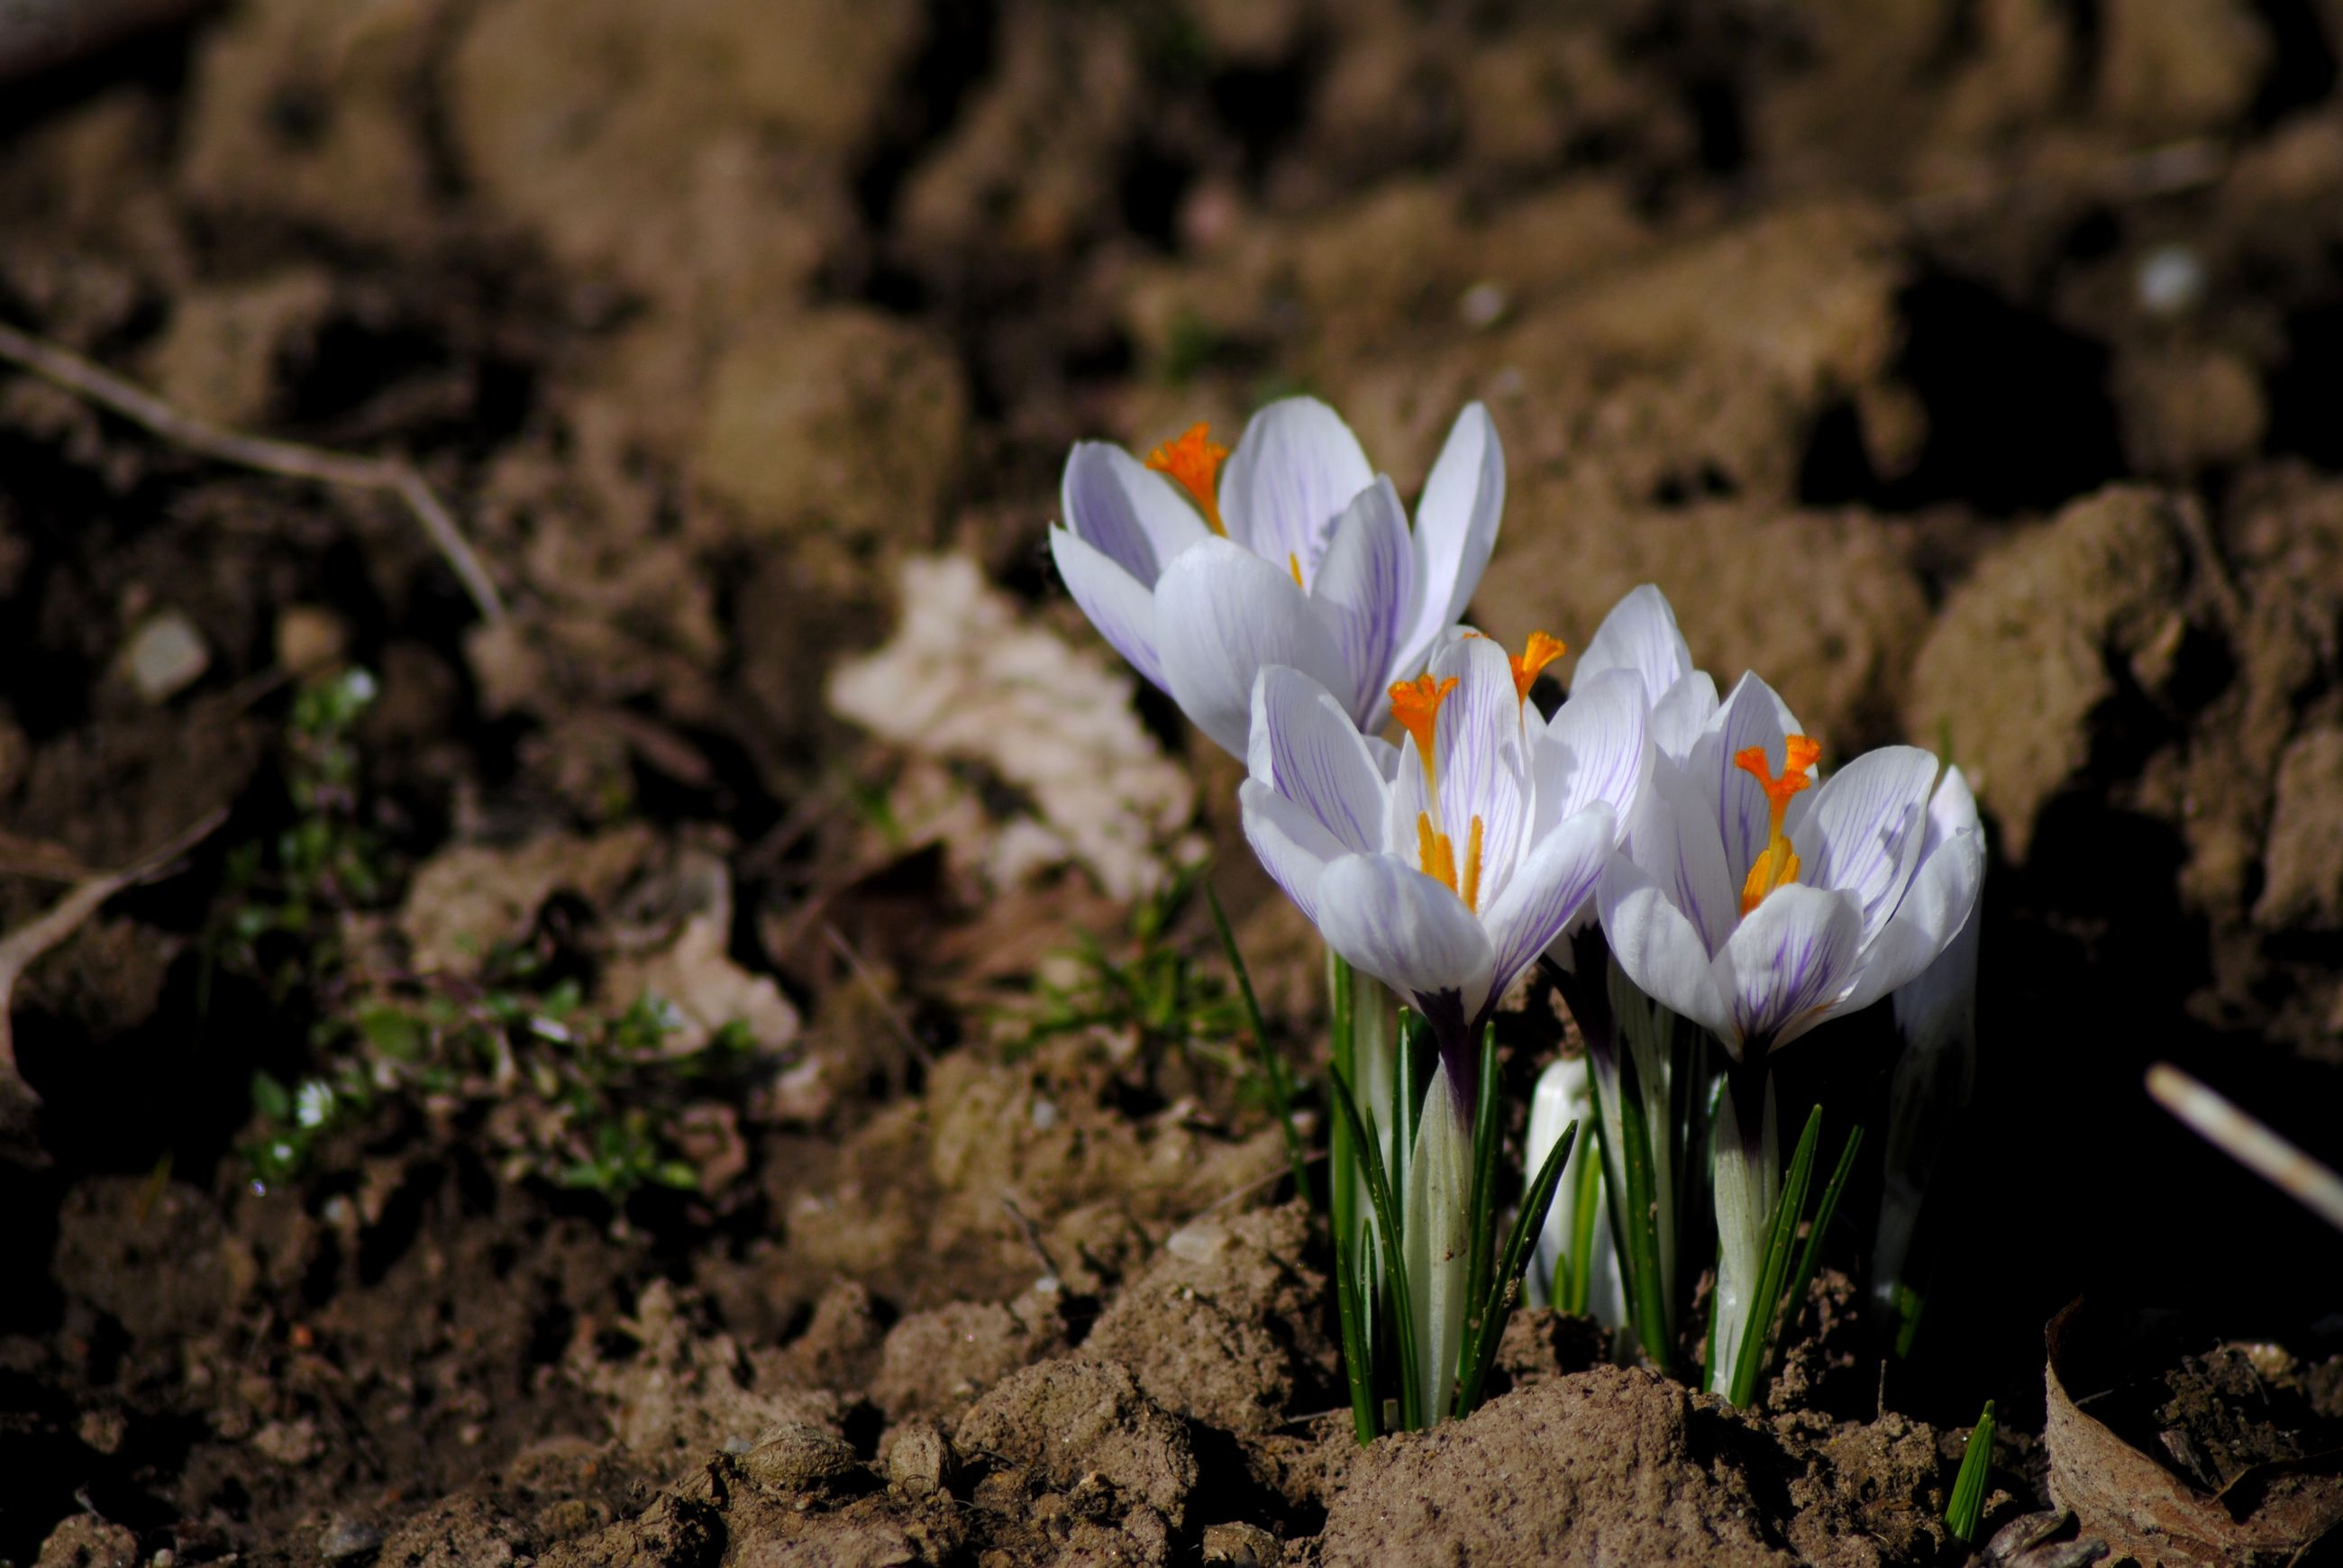 flower, nature, beauty in nature, freshness, fragility, growth, petal, flower head, focus on foreground, plant, close-up, blooming, field, outdoors, crocus, day, no people